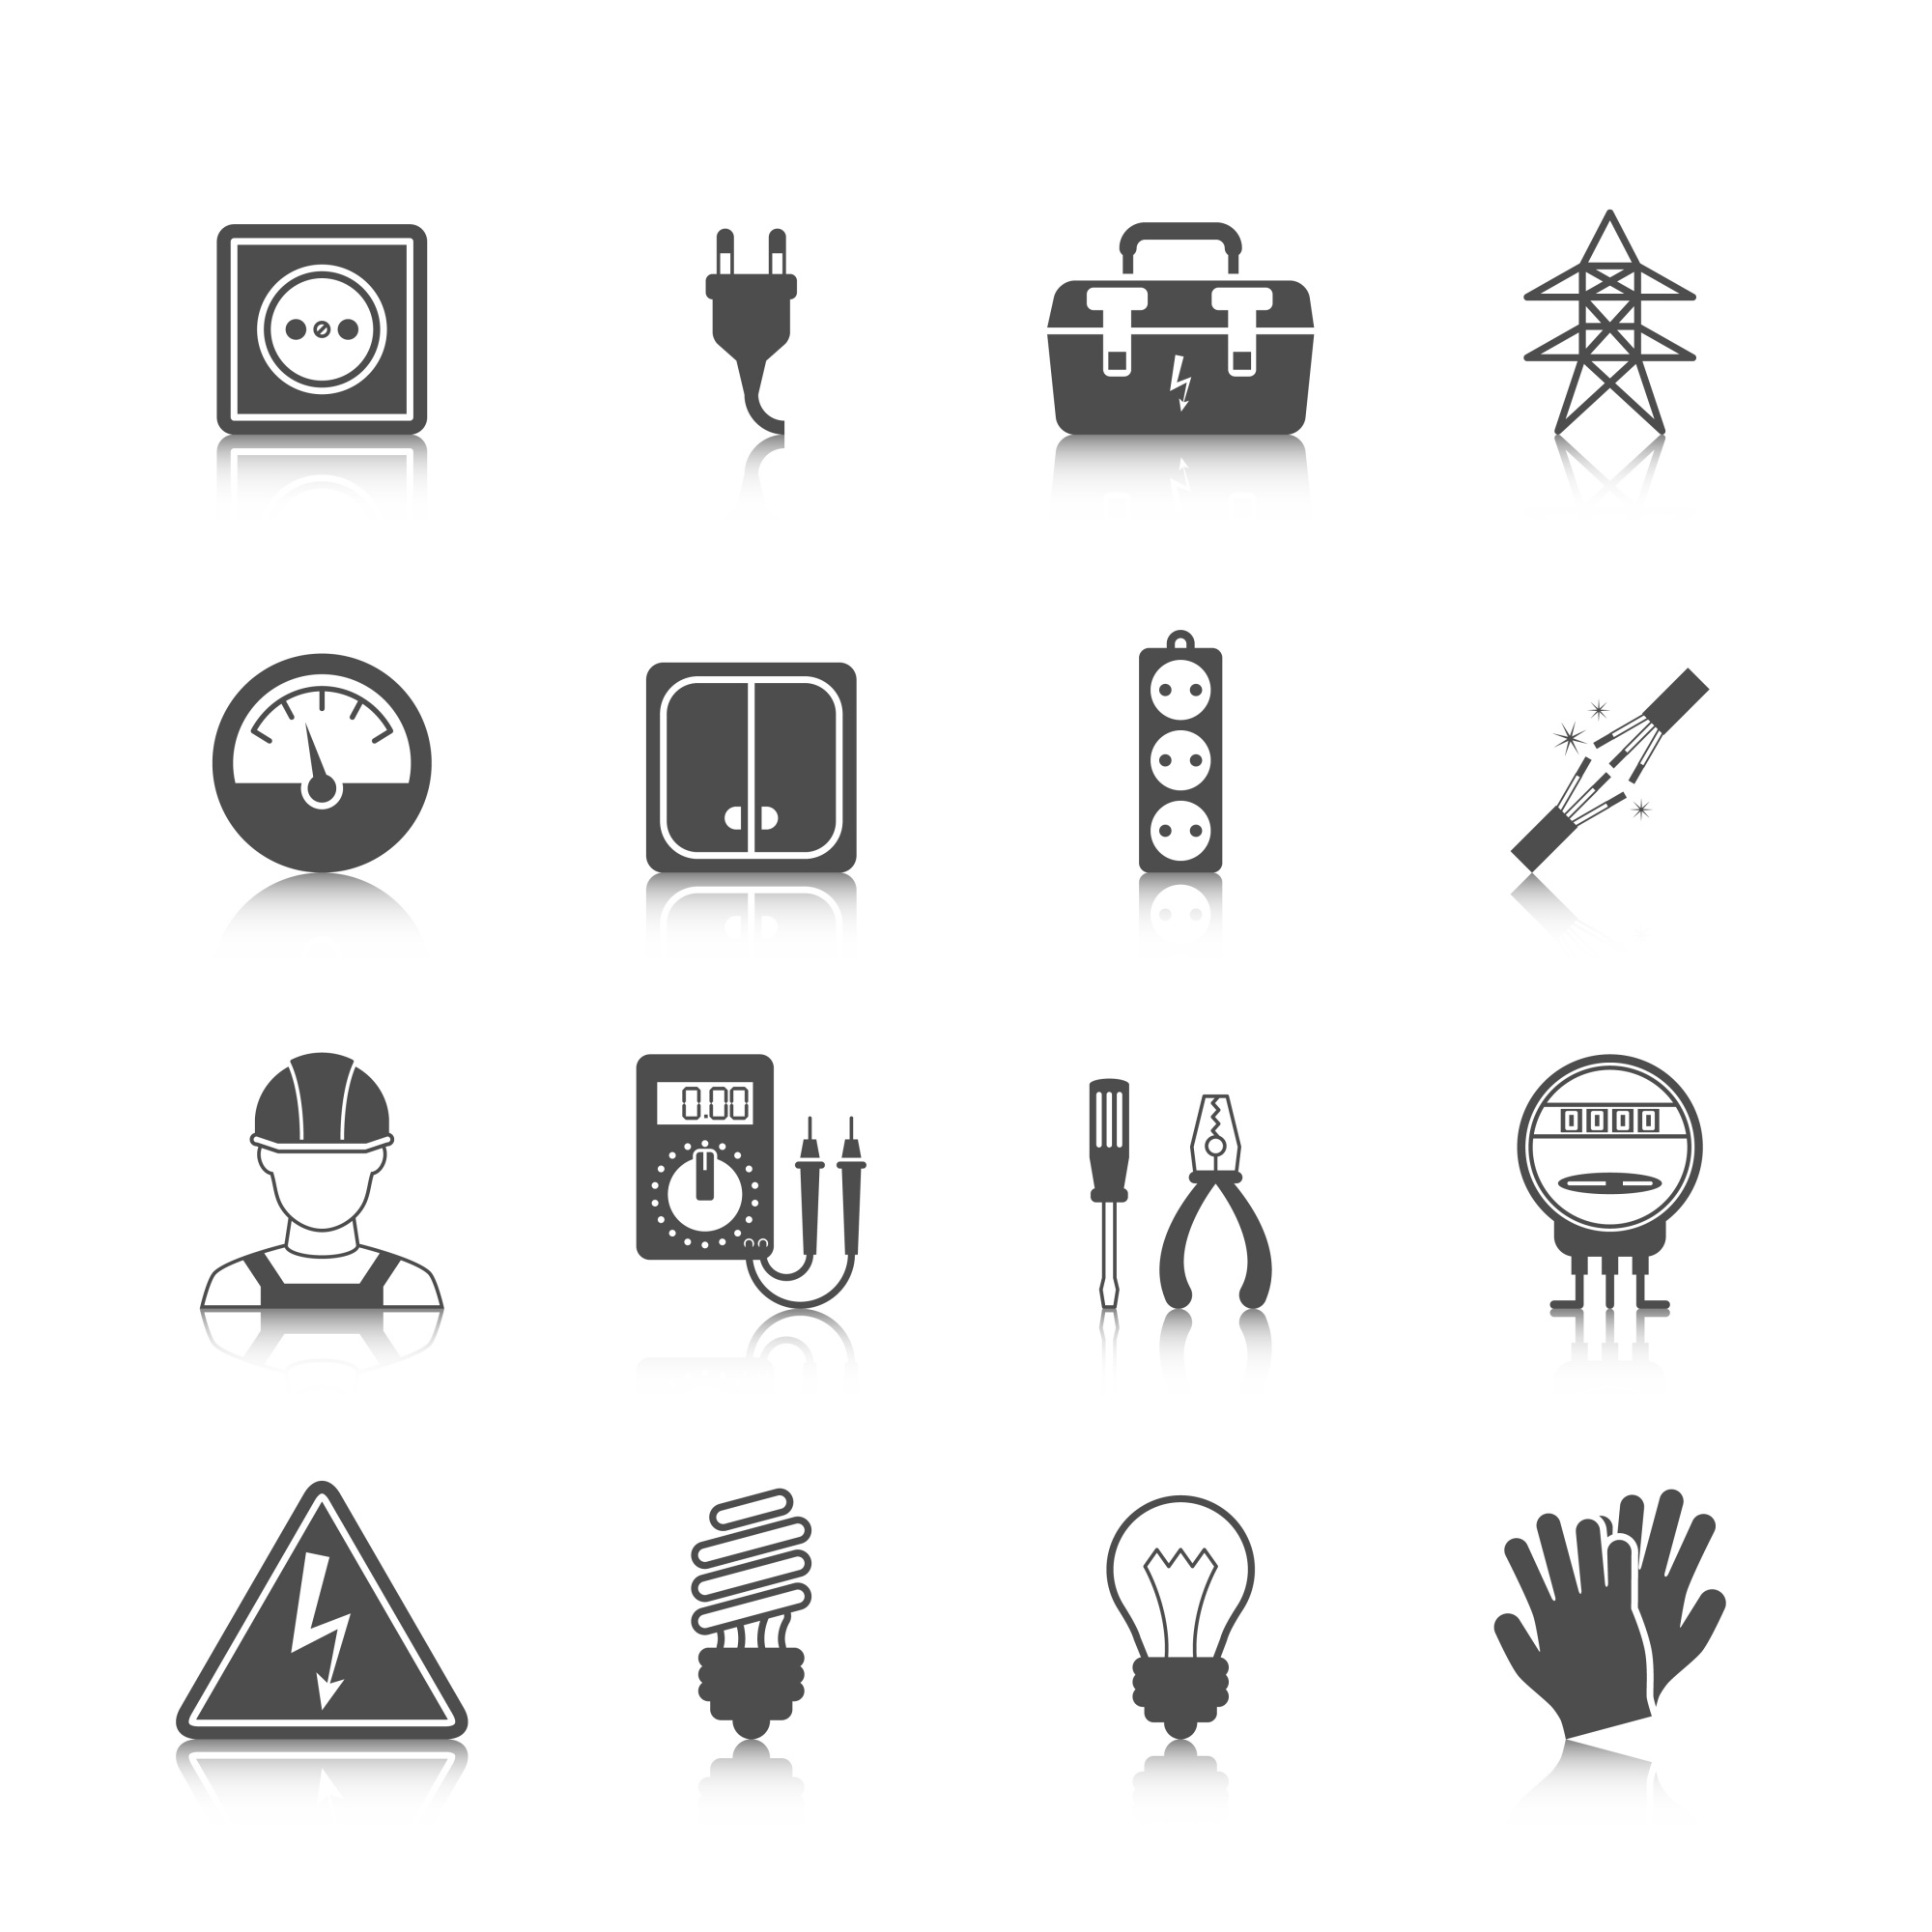 Electricity icons collection